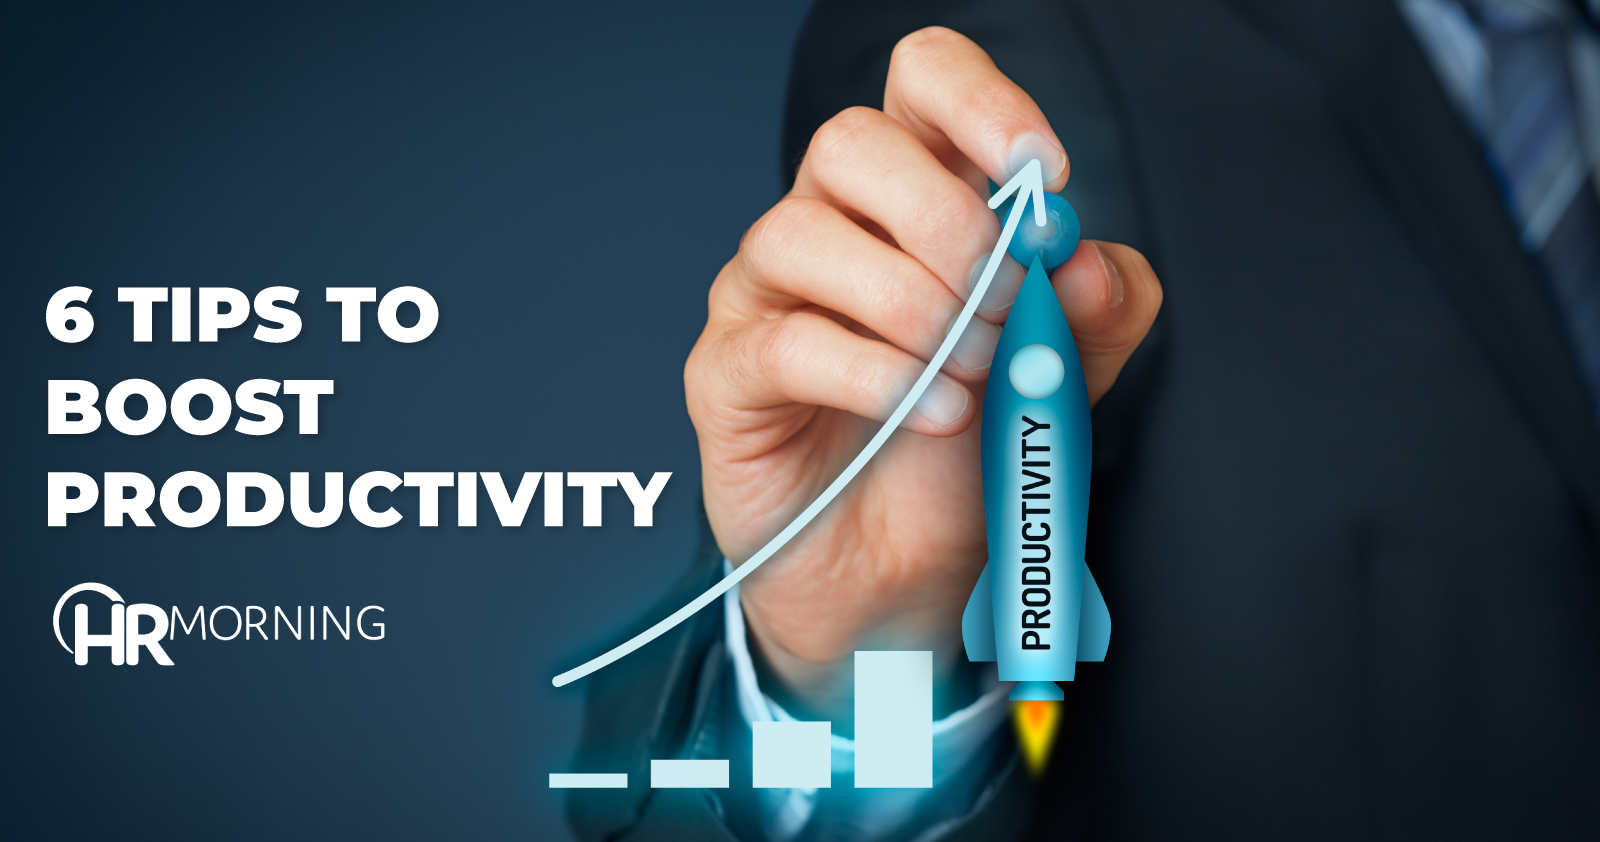 6 tips to boost productivity